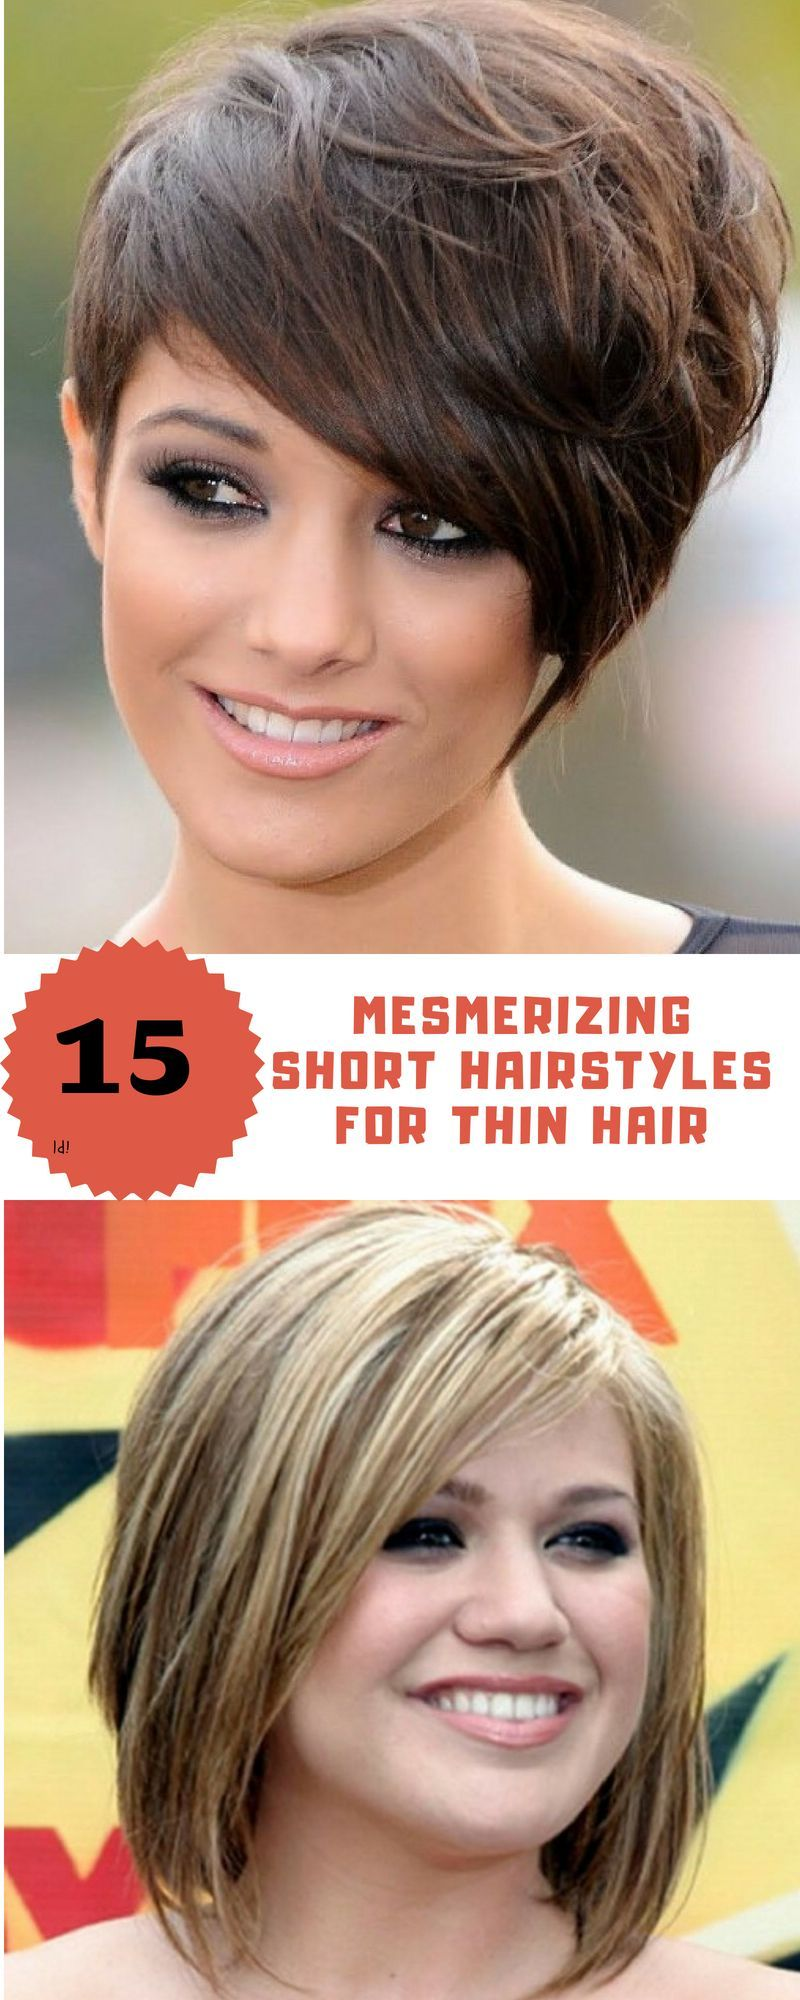 Short Hairstyles Are Always Trendy Women Love To Wear Their Hair Short For The Low Maintenance Feat Short Thin Hair Hairstyles For Thin Hair Short Hair Styles